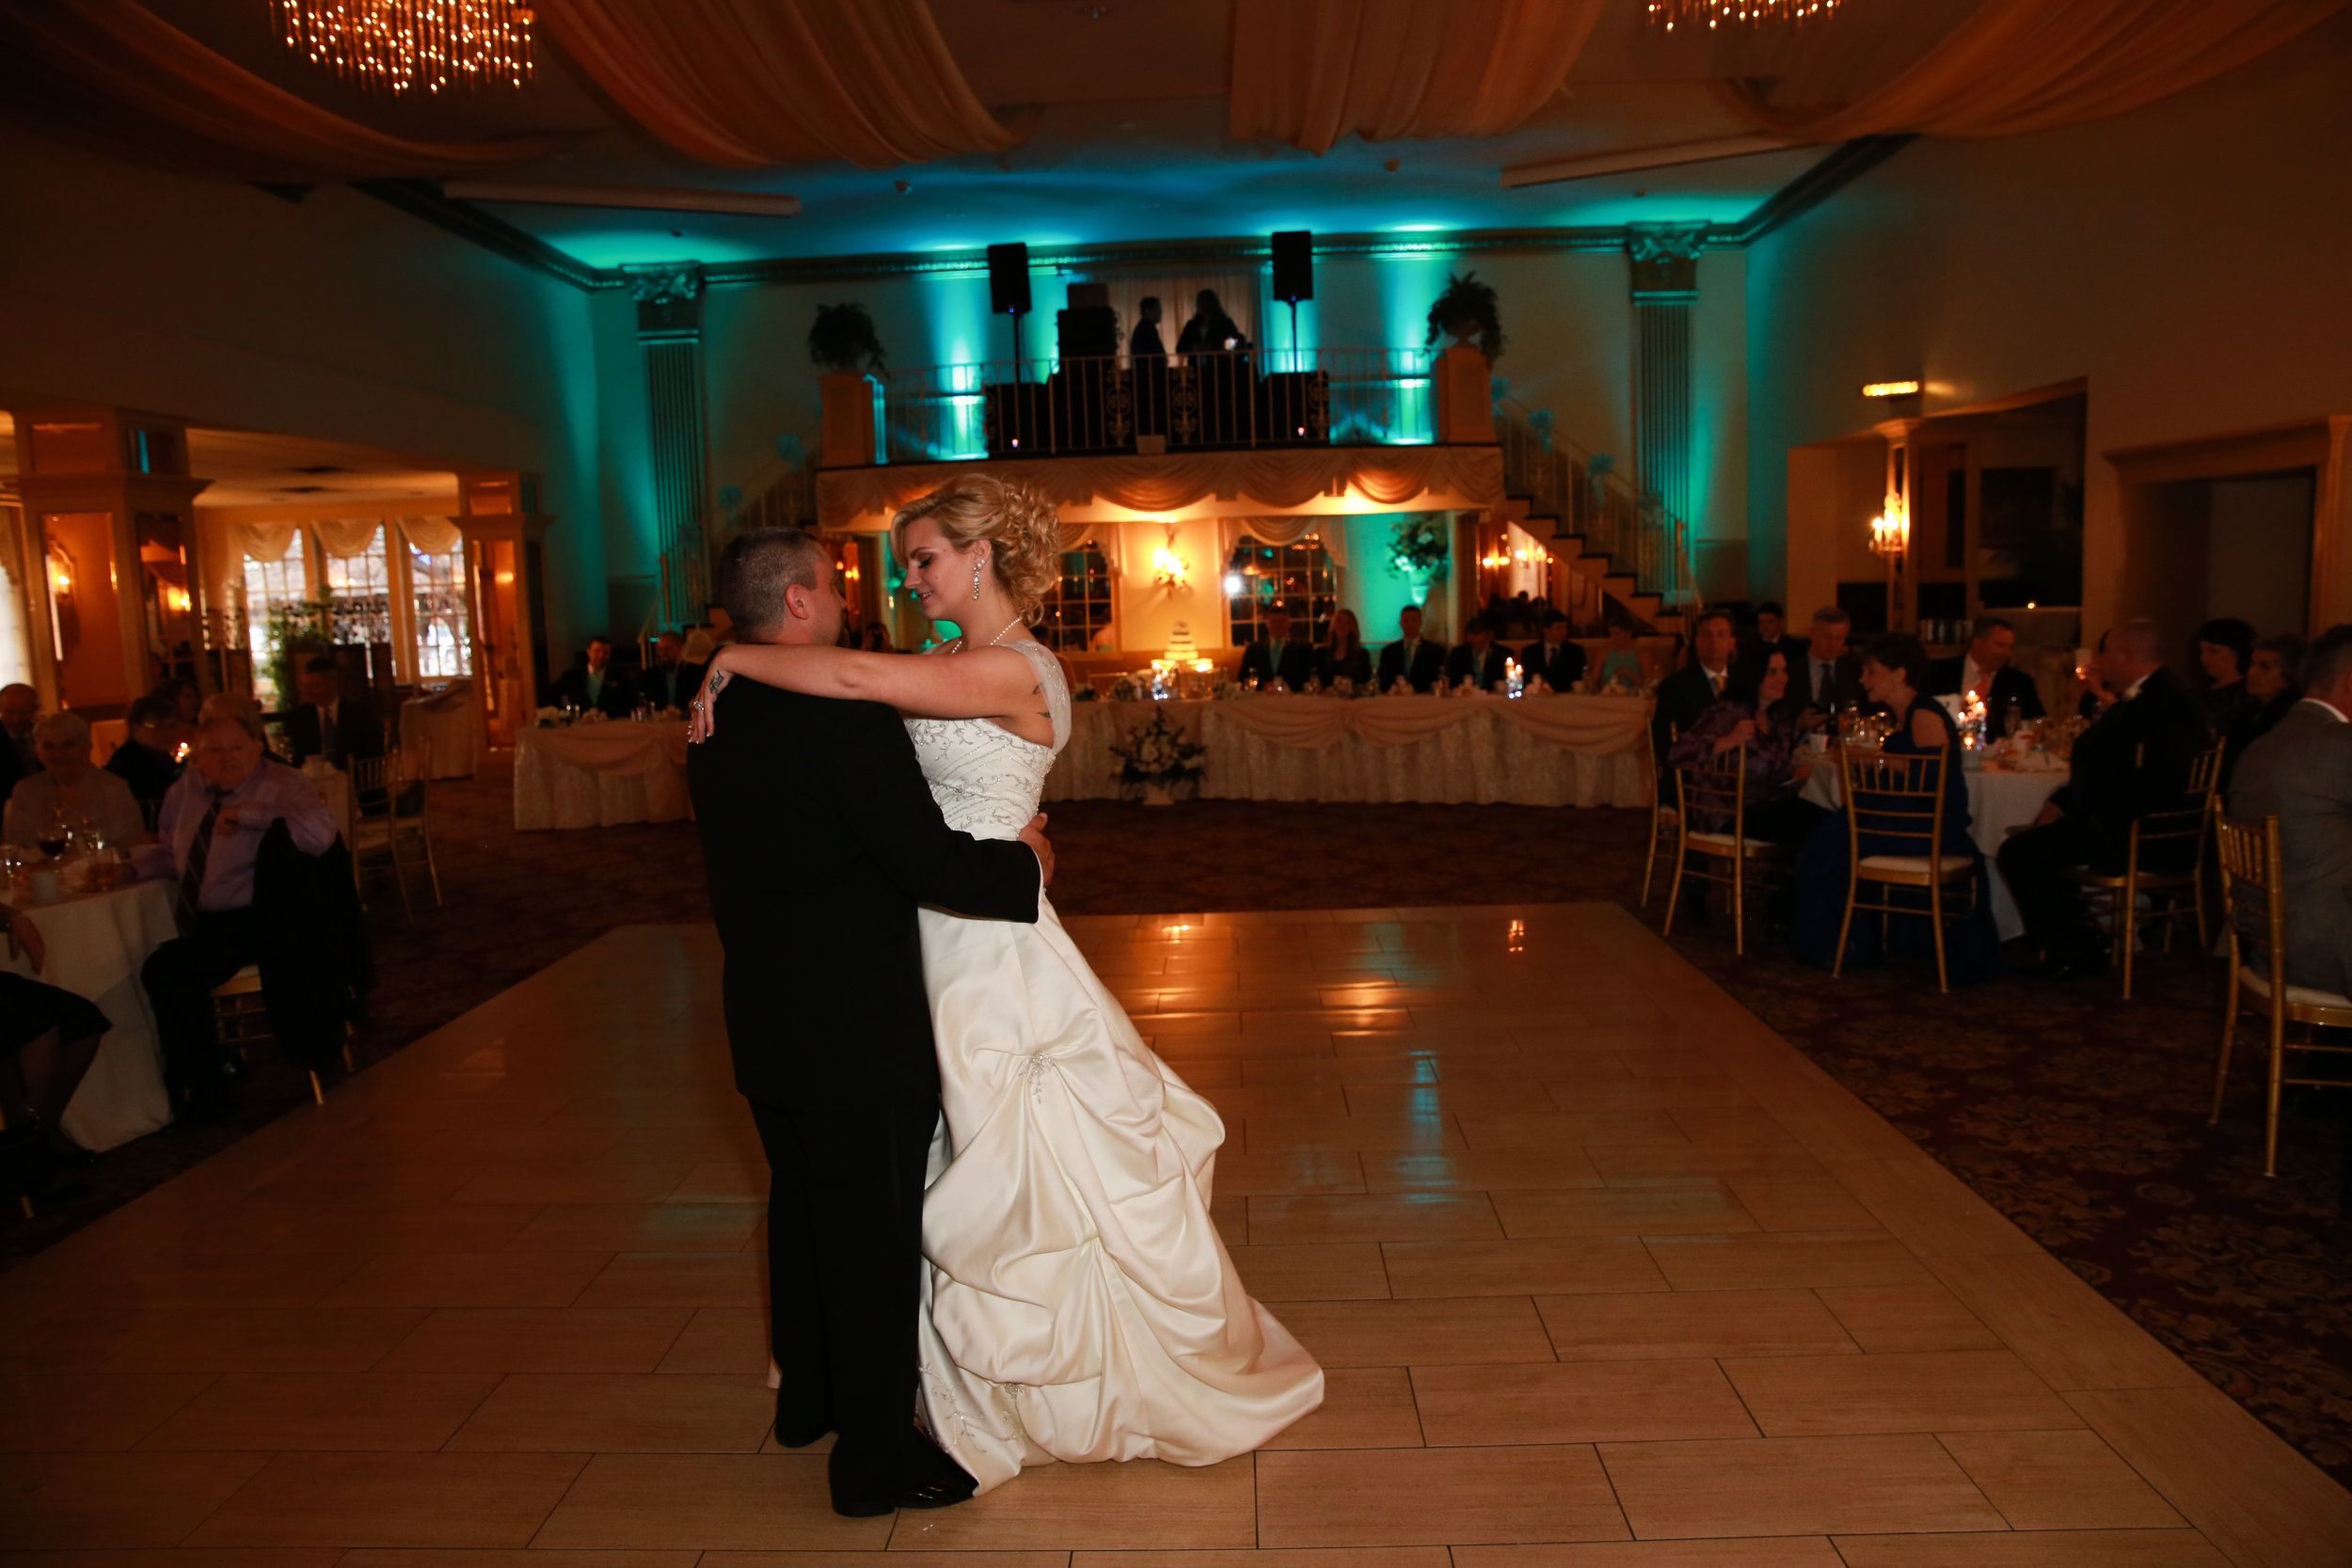 First Dance at a Formal Wedding Venue